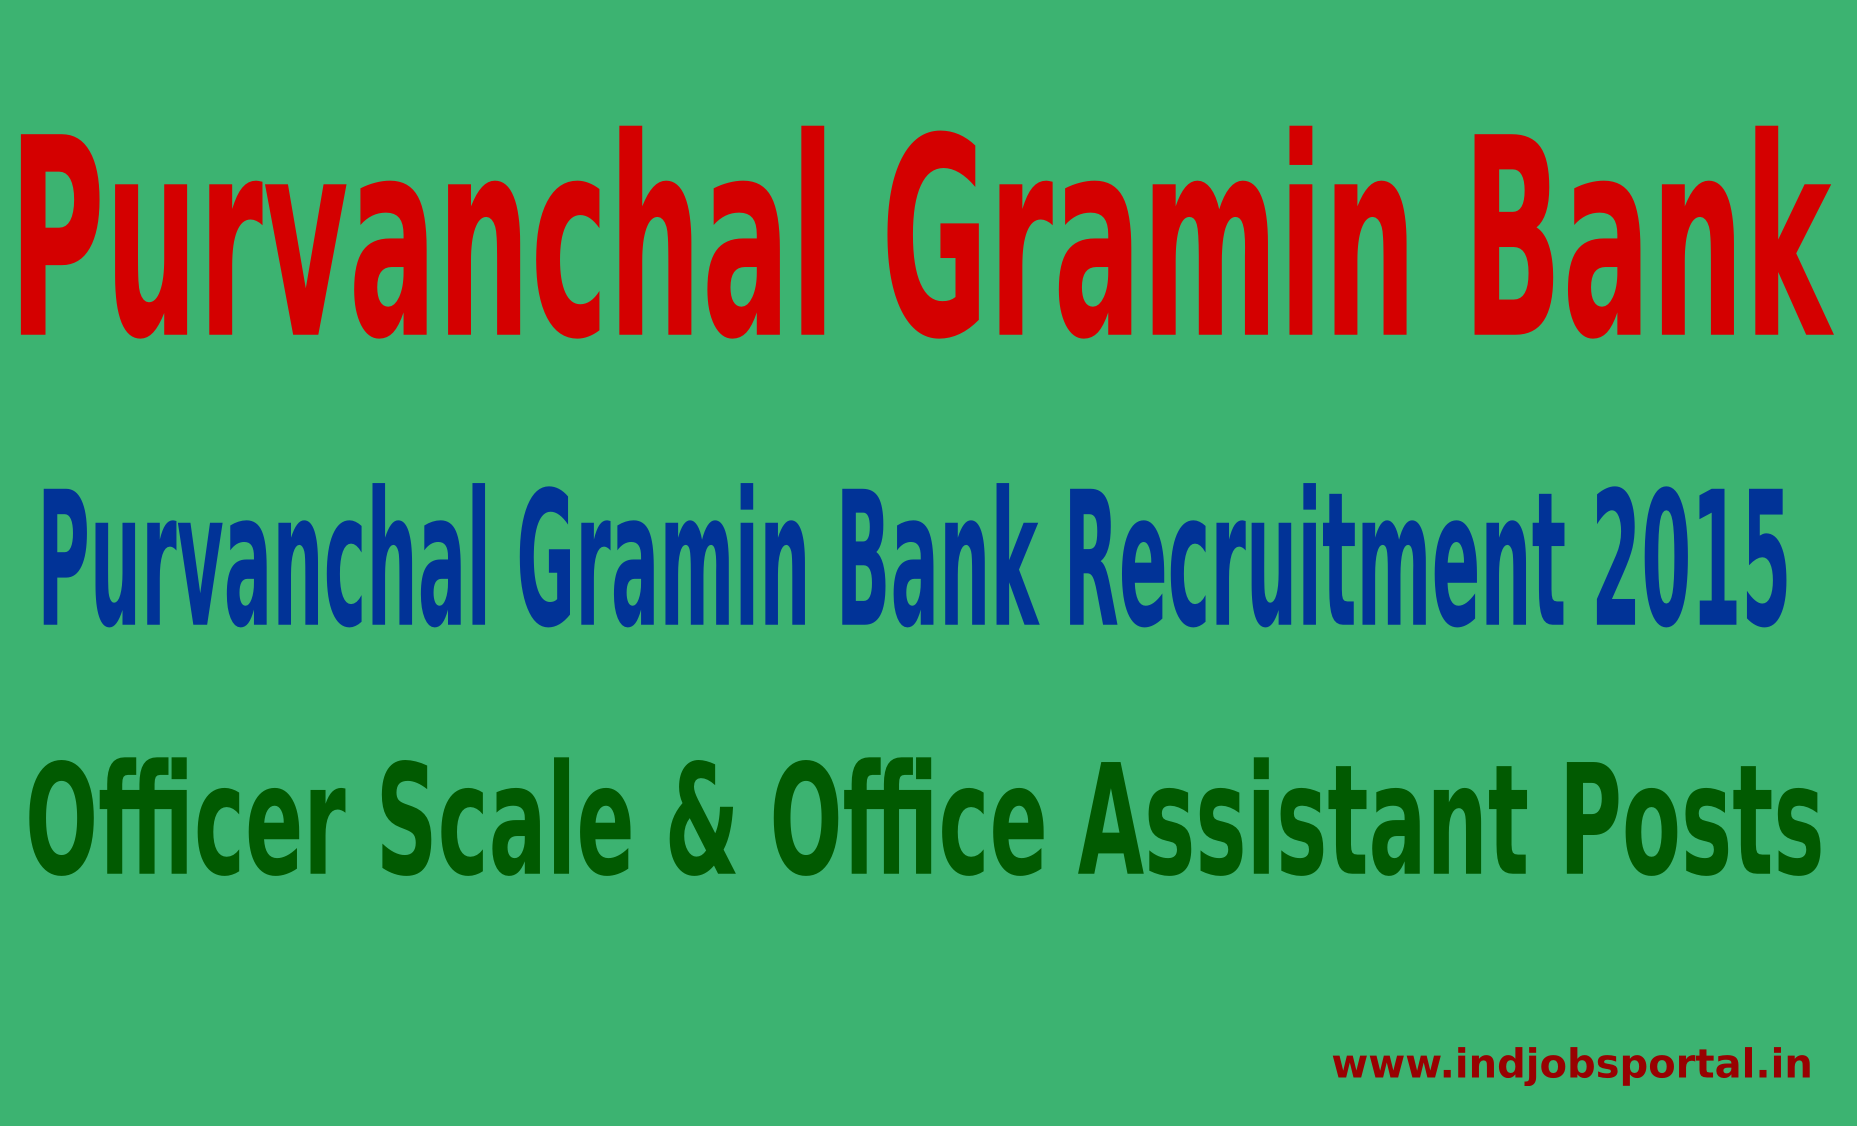 Purvanchal Gramin Bank Recruitment 2015 For 242 Officer Scale & Office Assistant Posts